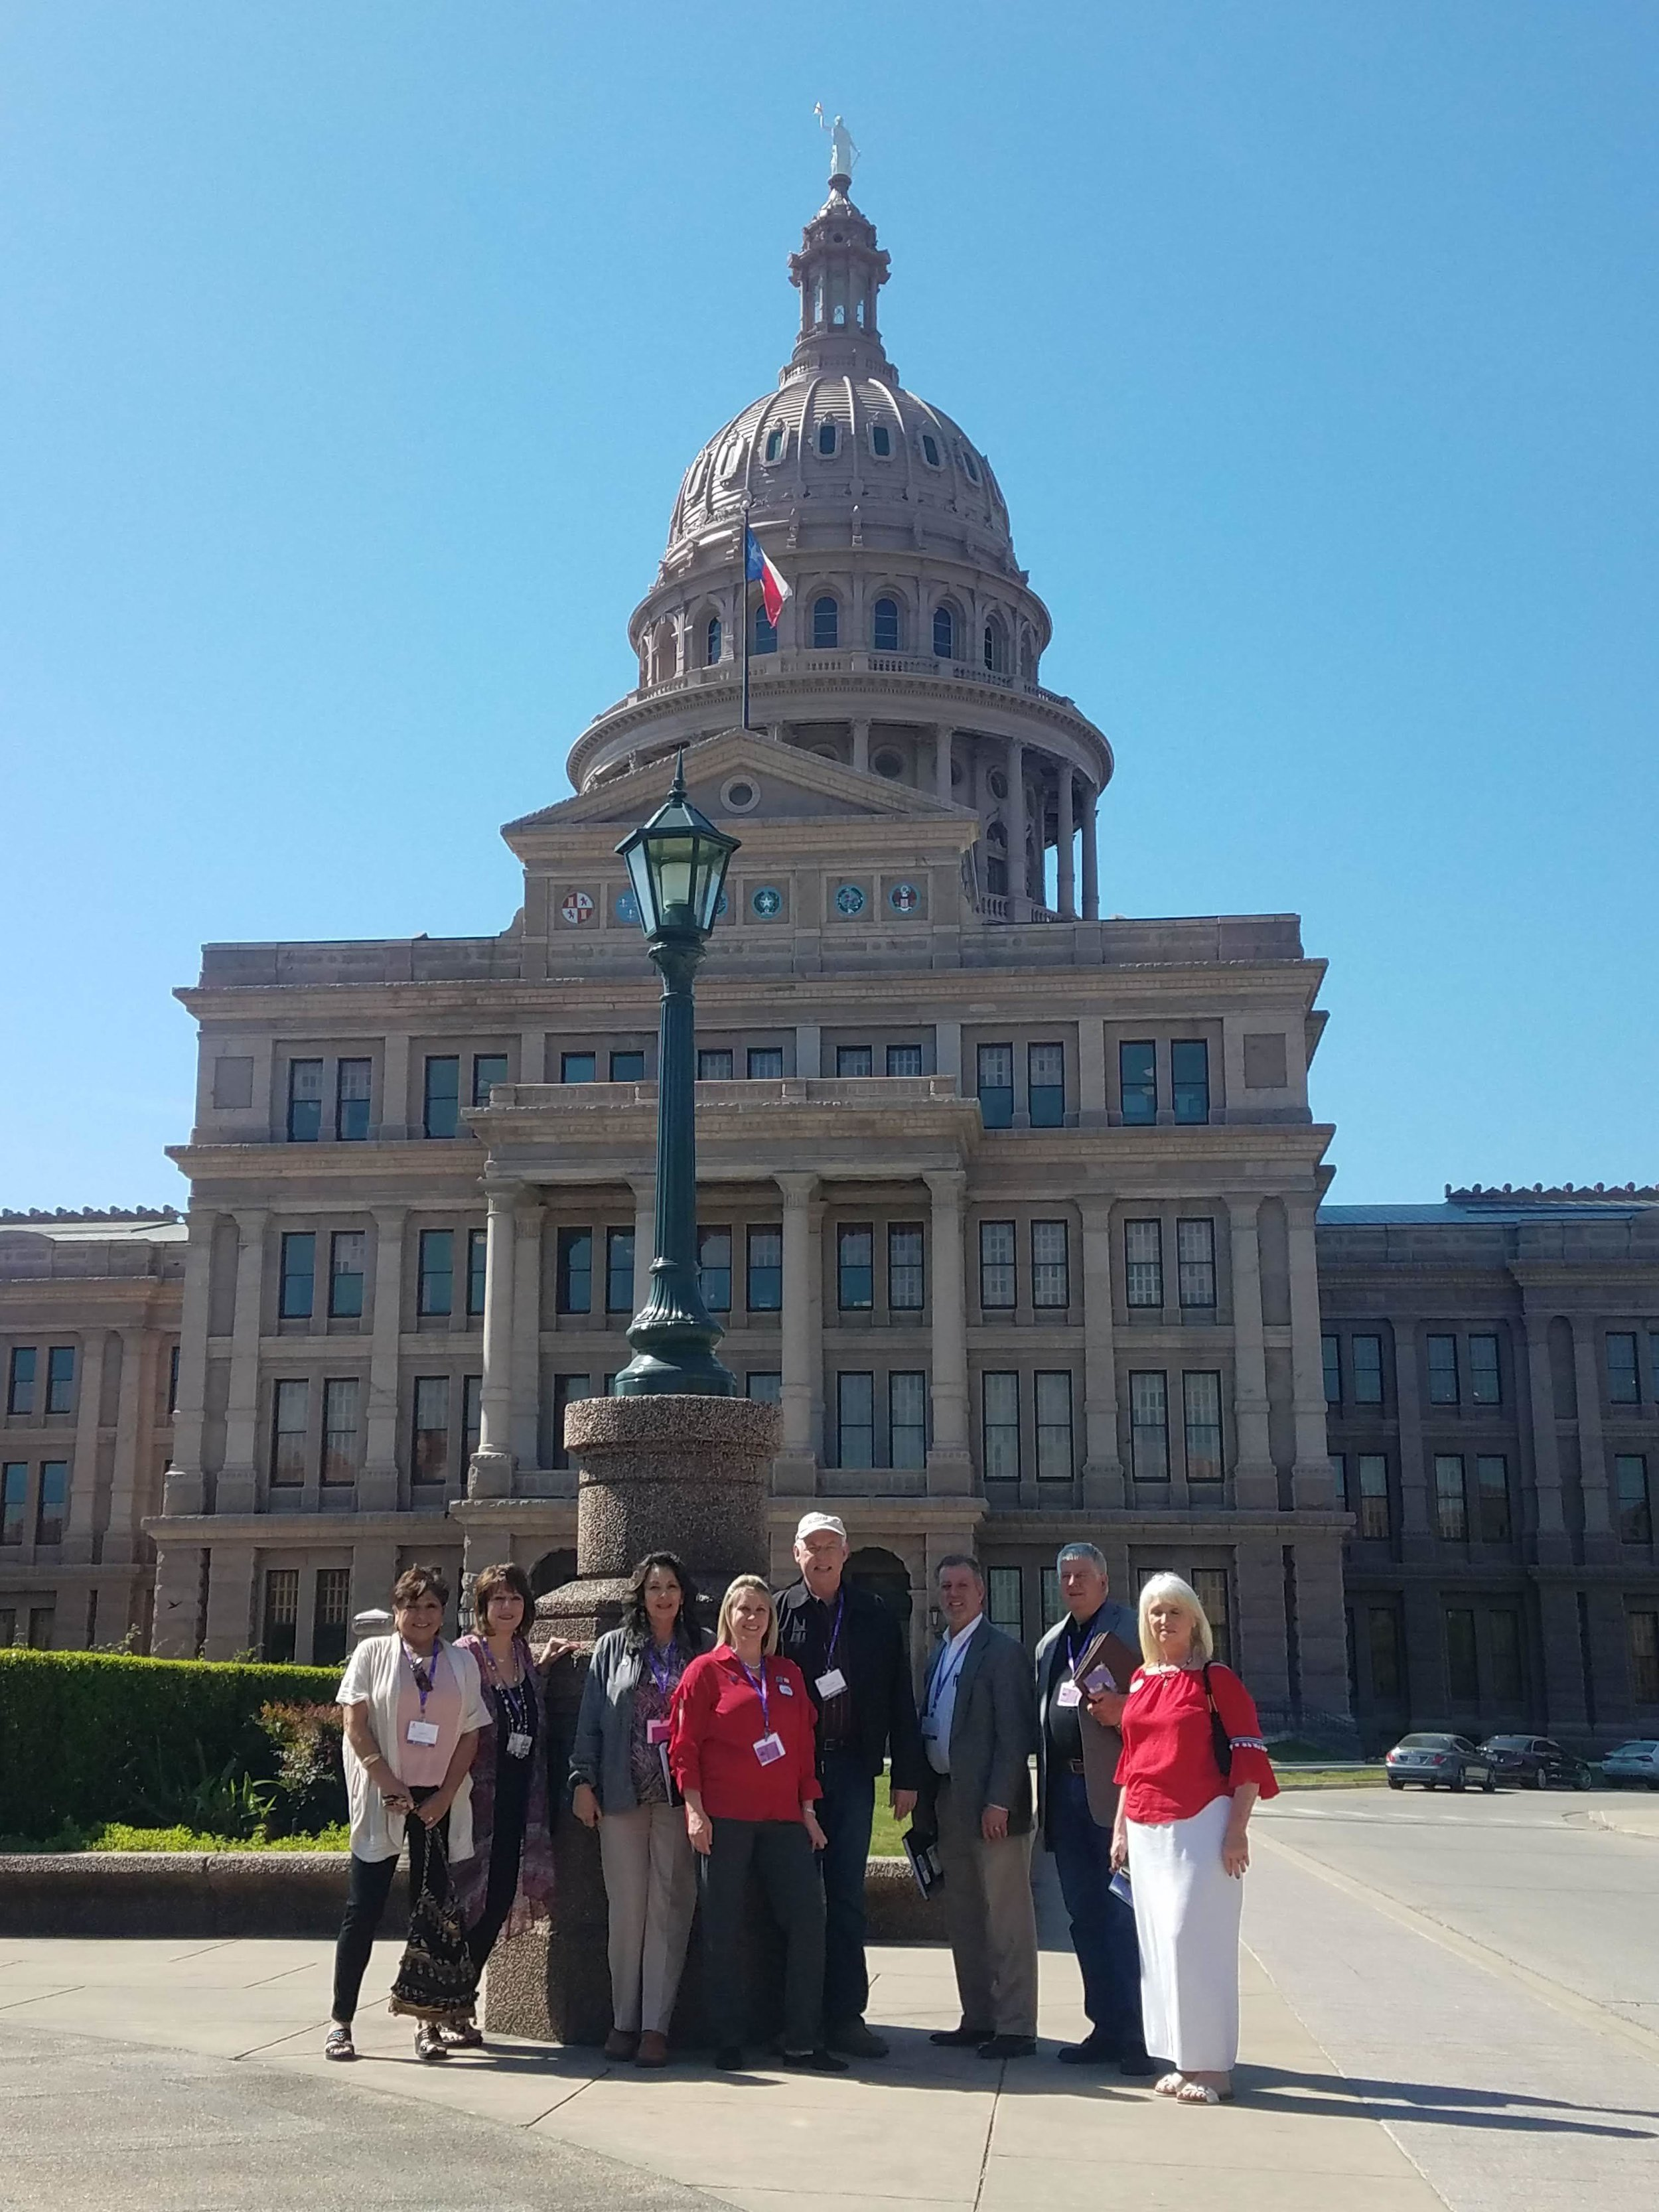 Realtor Day @ the Texas Capitol: March 26, 2019 - Members of the Heartland Association of Realtors were among nearly 3,000 REALTORS who participated in REALTOR Day at the Texas Capitol on March 26, 2019.During the meetings, REALTORS discussed priorities such as support for property tax and school finance reform, better disaster response in our state, defense against forced annexation, and support to keep the Texas Real Estate Commission operating.The Heartland REALTORS met with Mike Lang's office and JD Sheffield. It was important for  us toshare the REALTOR position on important property rights issues and to see which of those issues weremost important to our representatives.